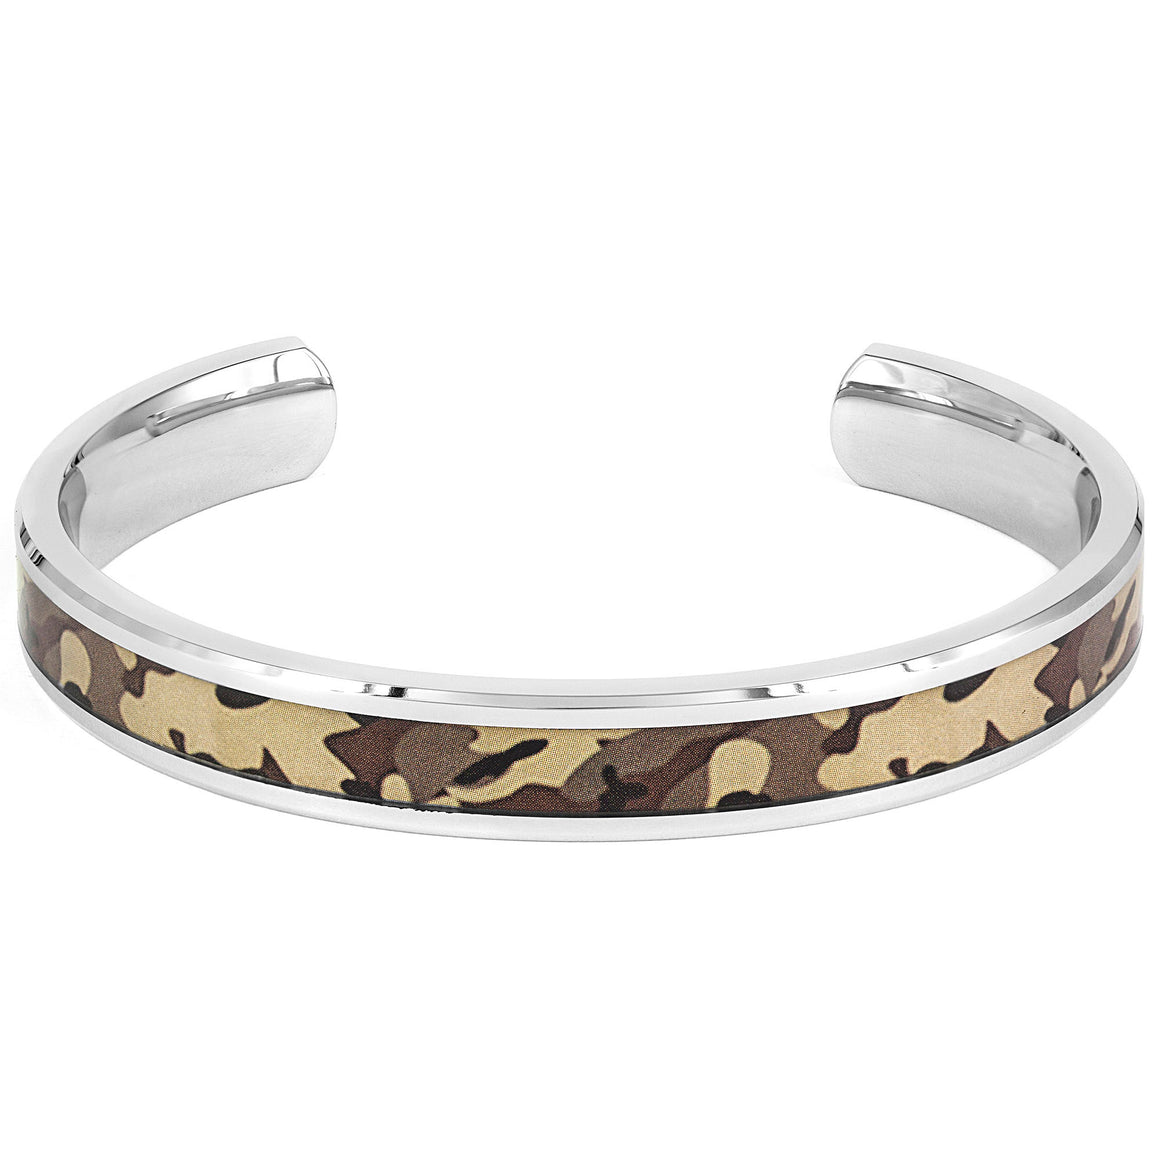 Crucible Stainless Steel Polished Green Camouflage Cuff Bracelet (10 mm) - 8""